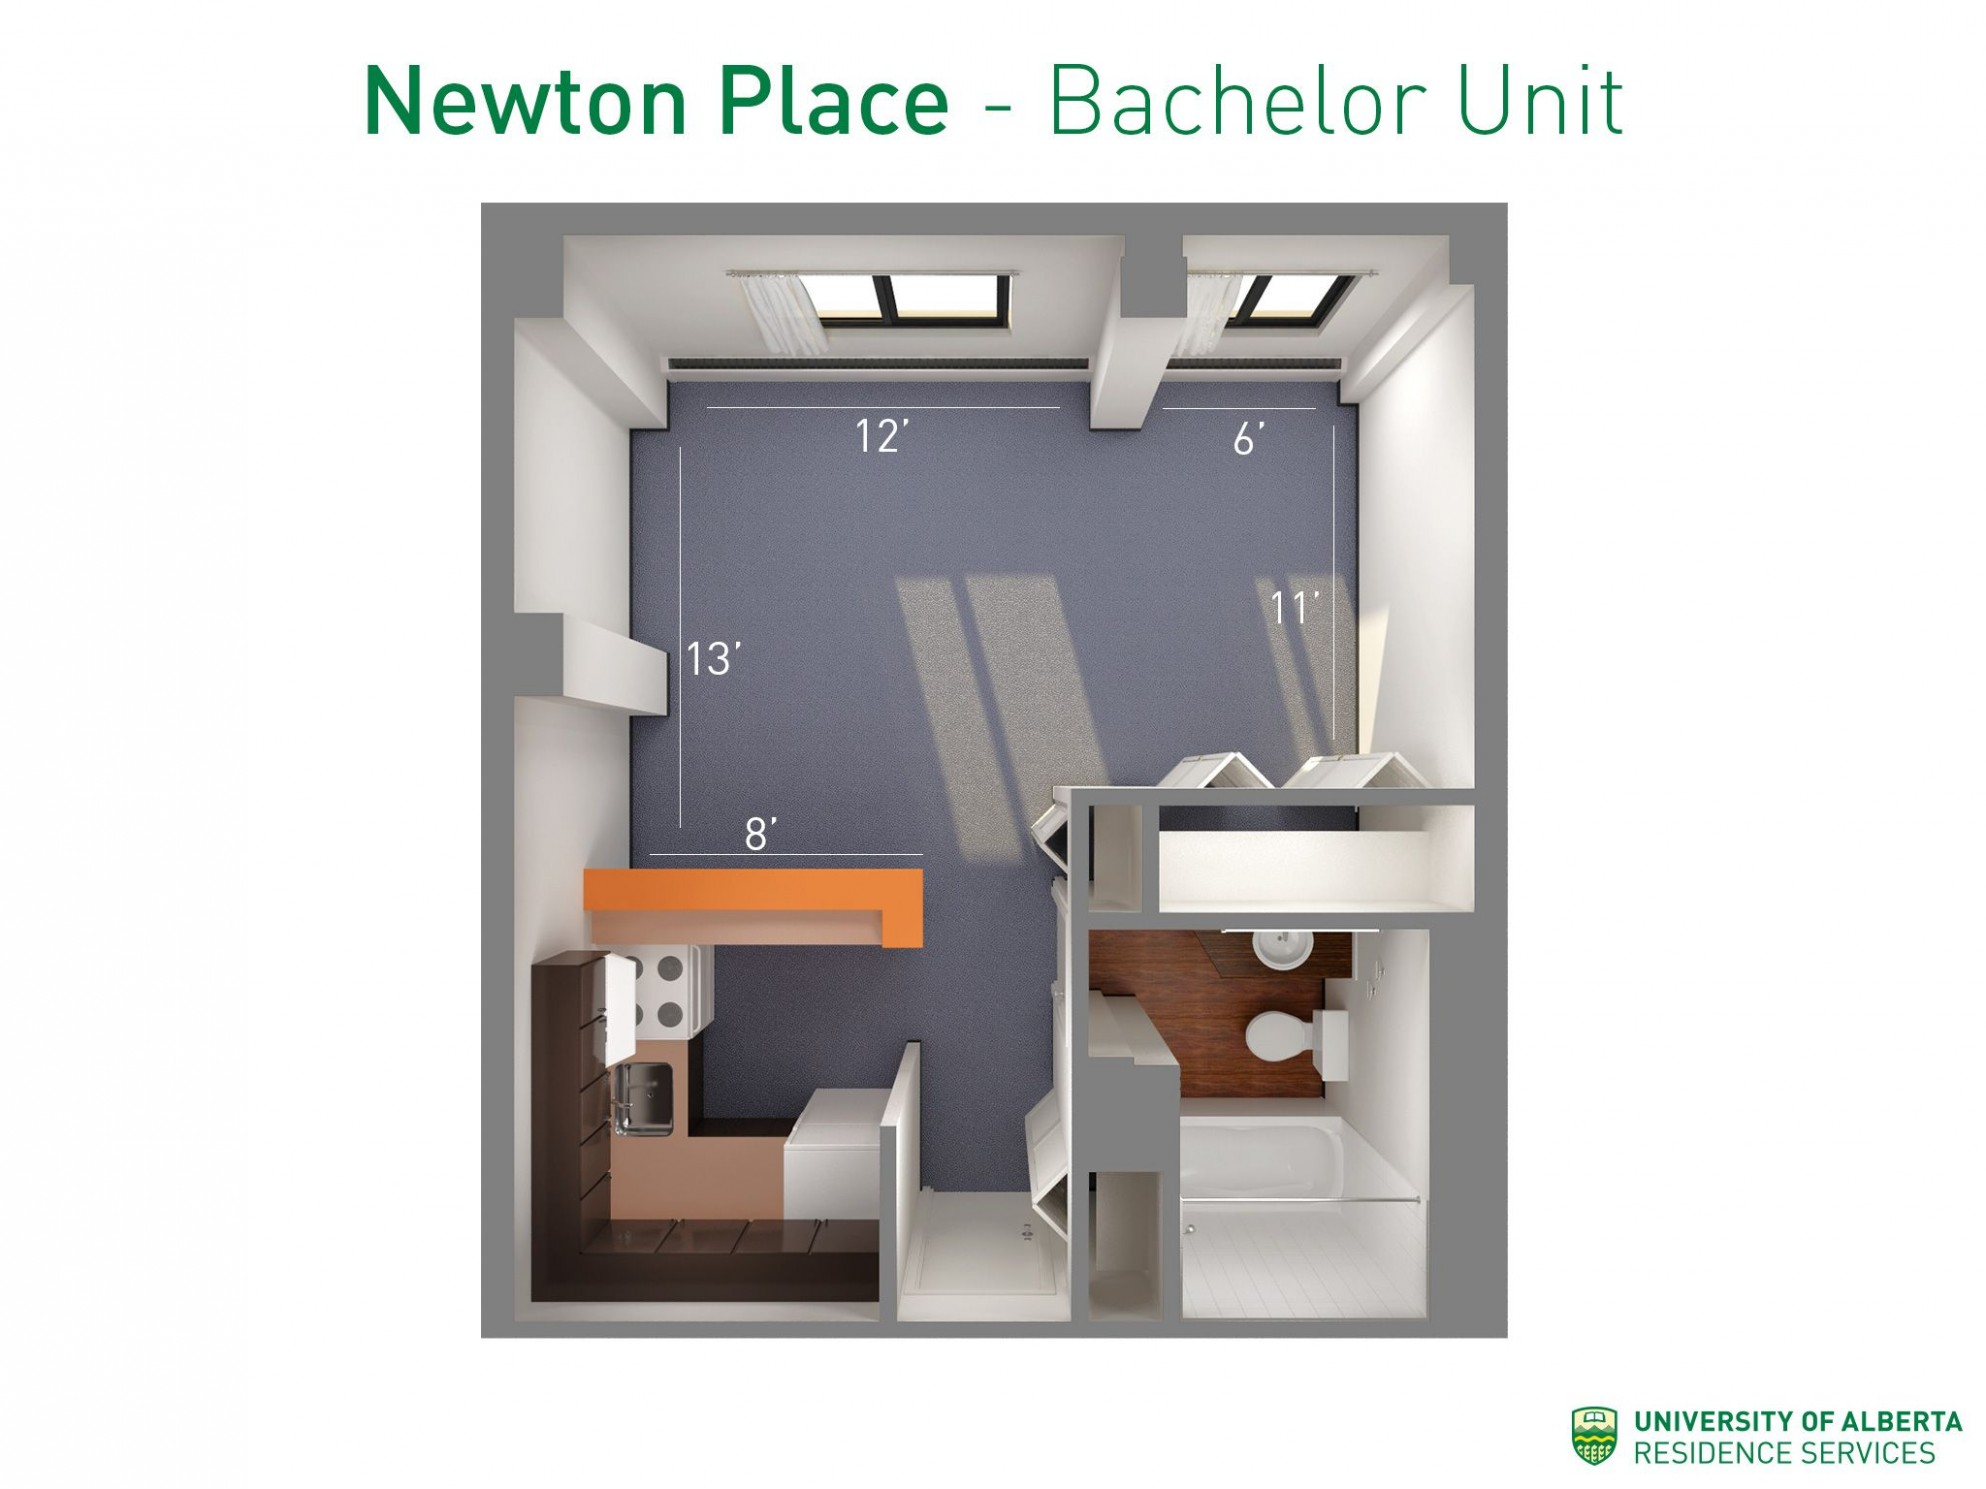 Floorplan with dimensions for bachelor units in Newton Place  - Apartment Unit Design